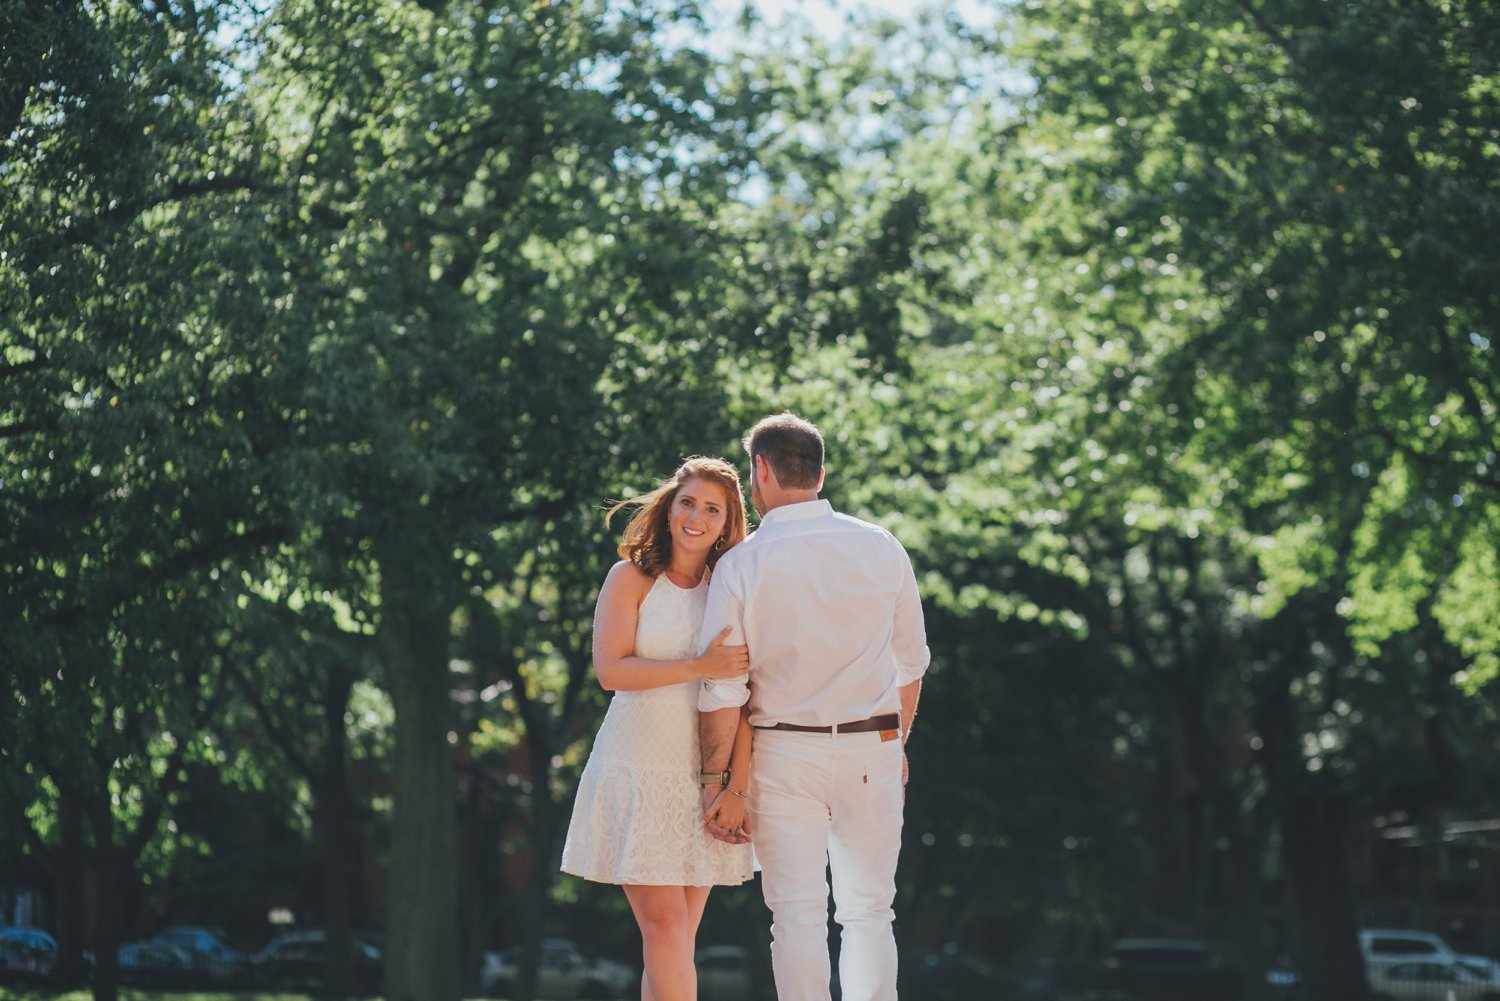 32NYC-NJ-ENGAGEMENT-PHOTOGRAPHY-BY-INTOTHESTORY-MOO-JAE.JPG